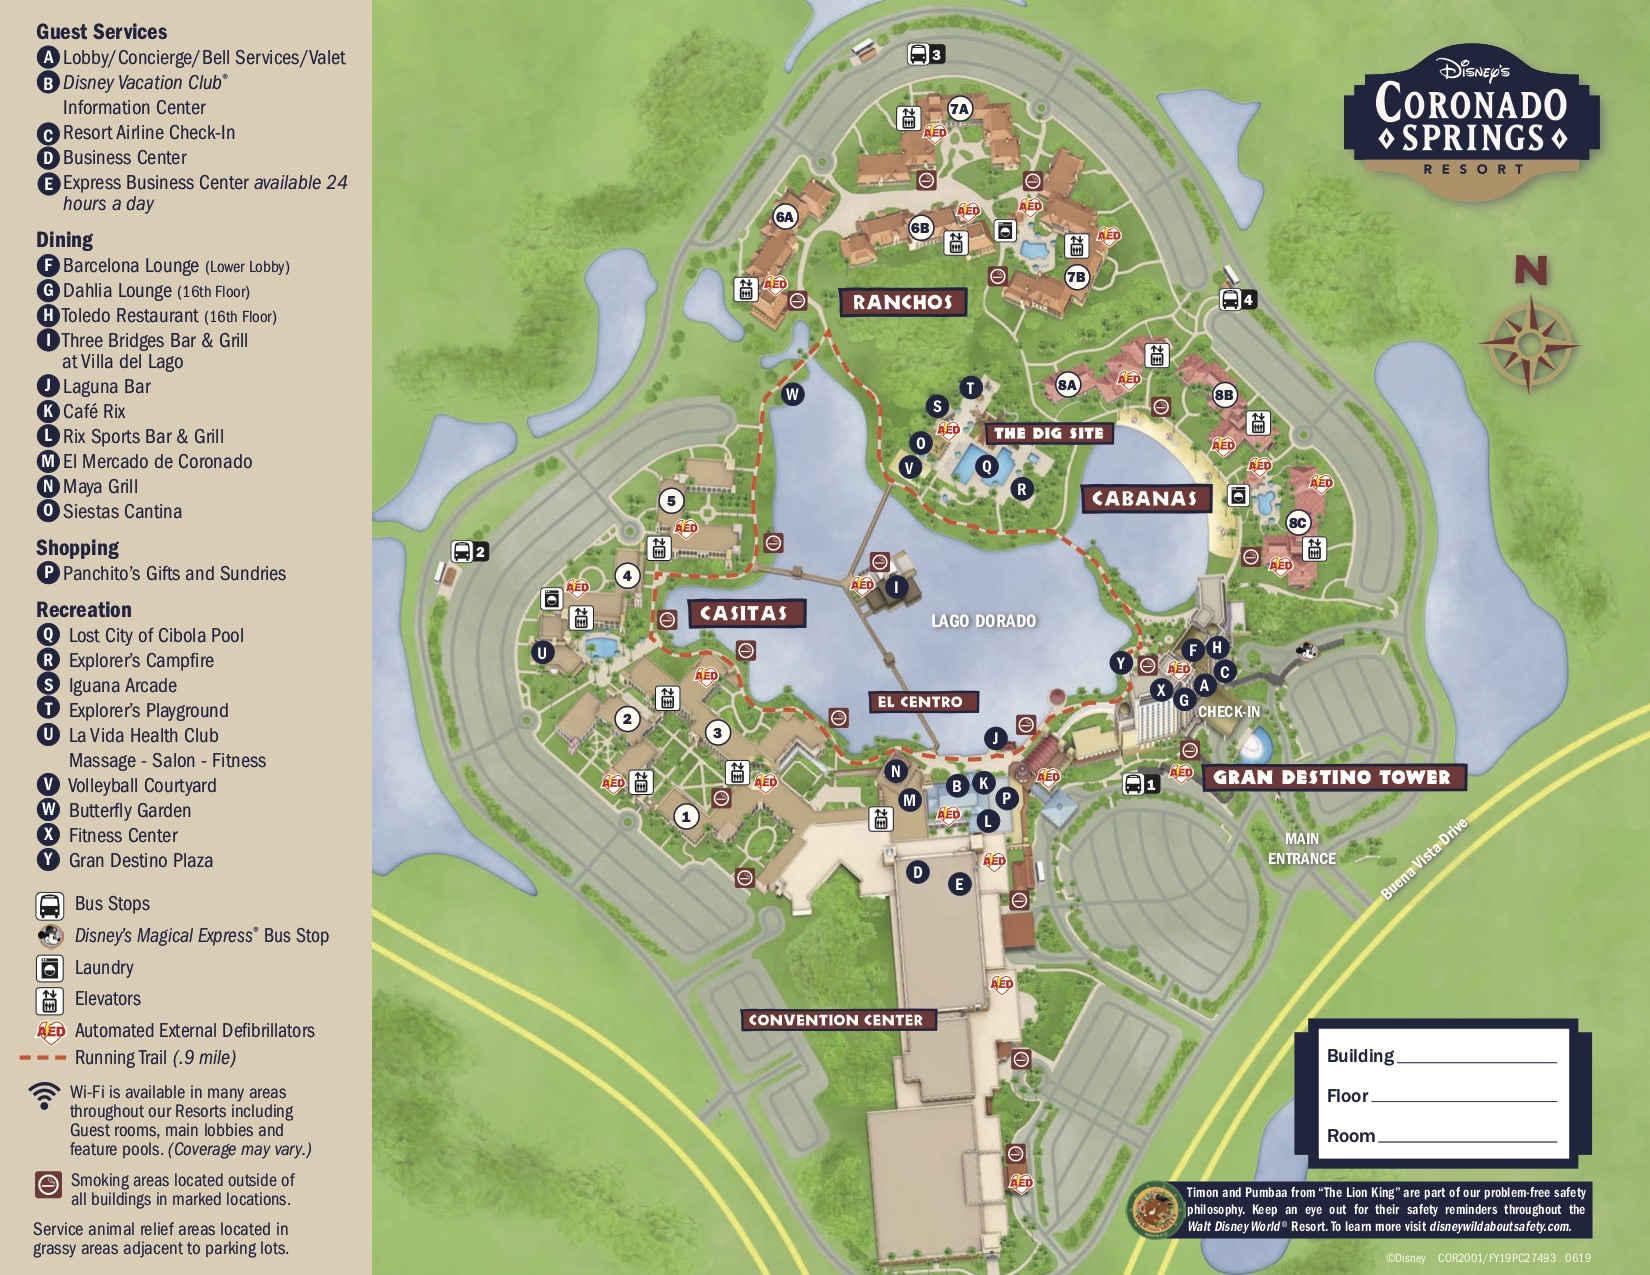 a map of the Coronado Springs resort